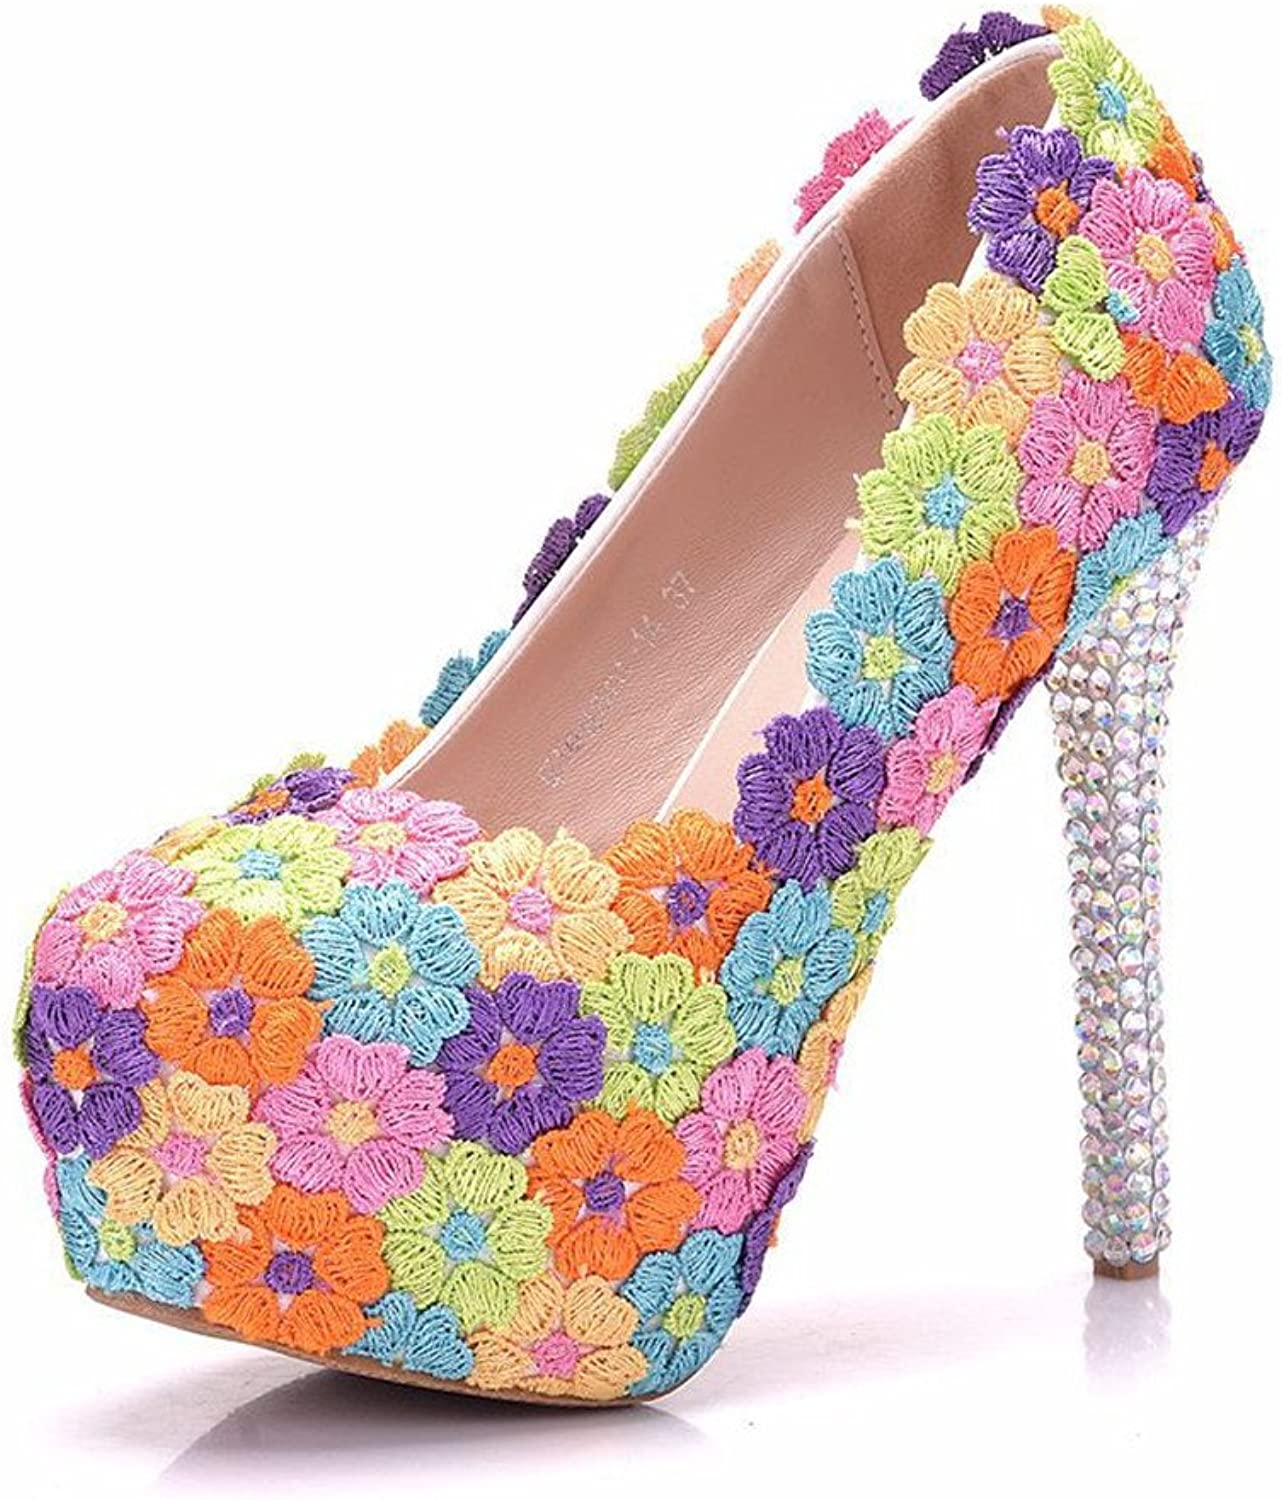 FORTUN Platform Round-Toed Stiletto Heels Fashion Embroidered Women's high Heels